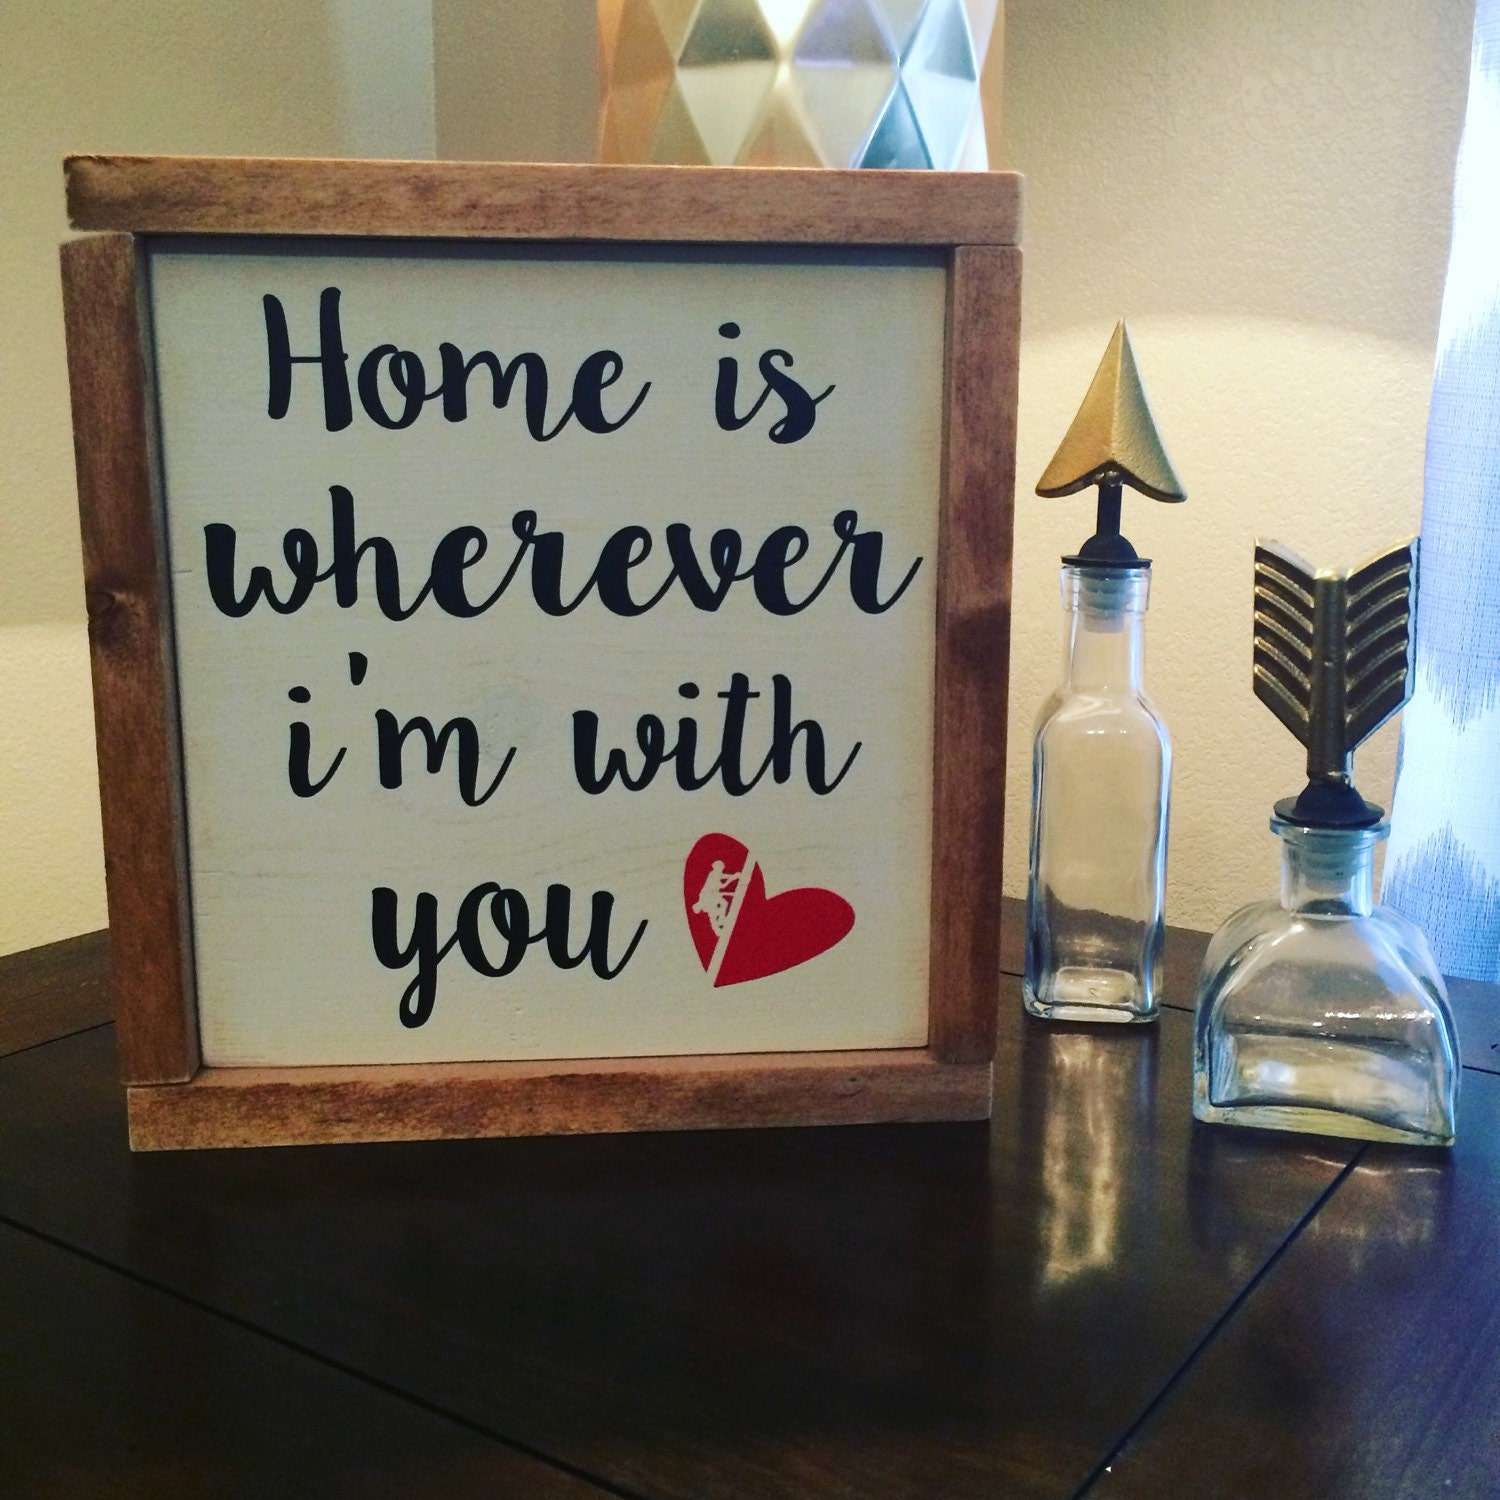 Home Is Wherever I M With You Wood Sign Home Decor: Home Is Wherever I'm With You // Wood Sign